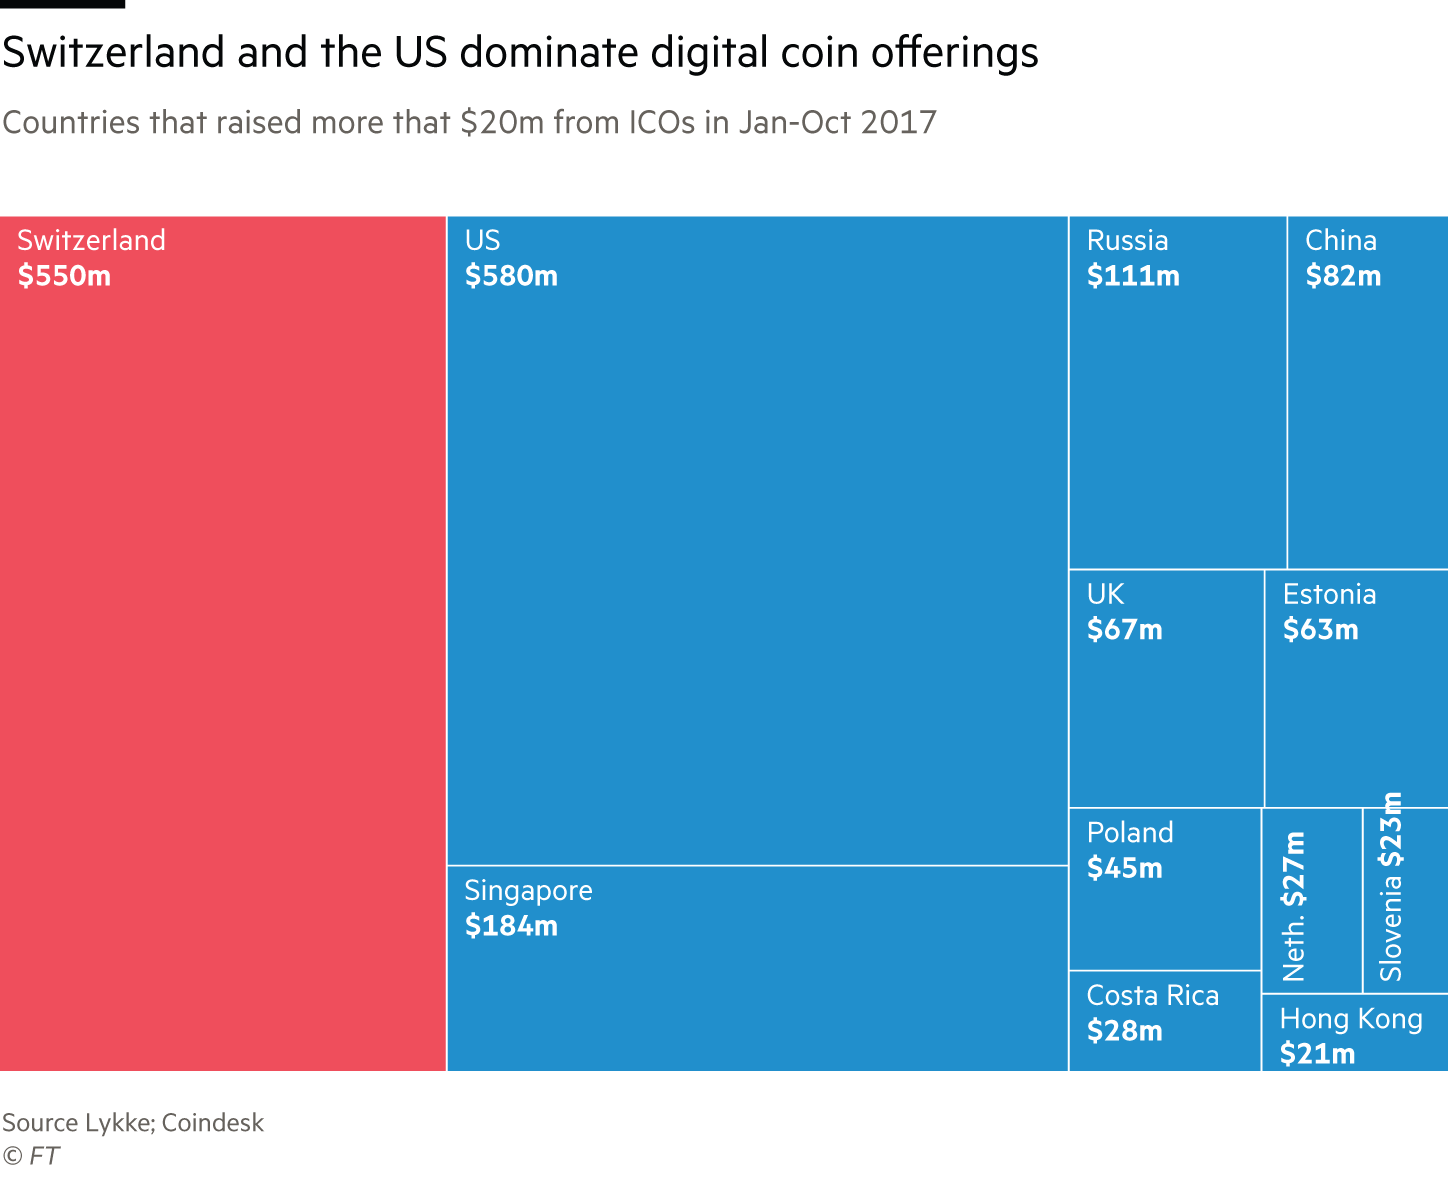 Countries that raised more that $20m from ICOs in Jan-Oct 2017